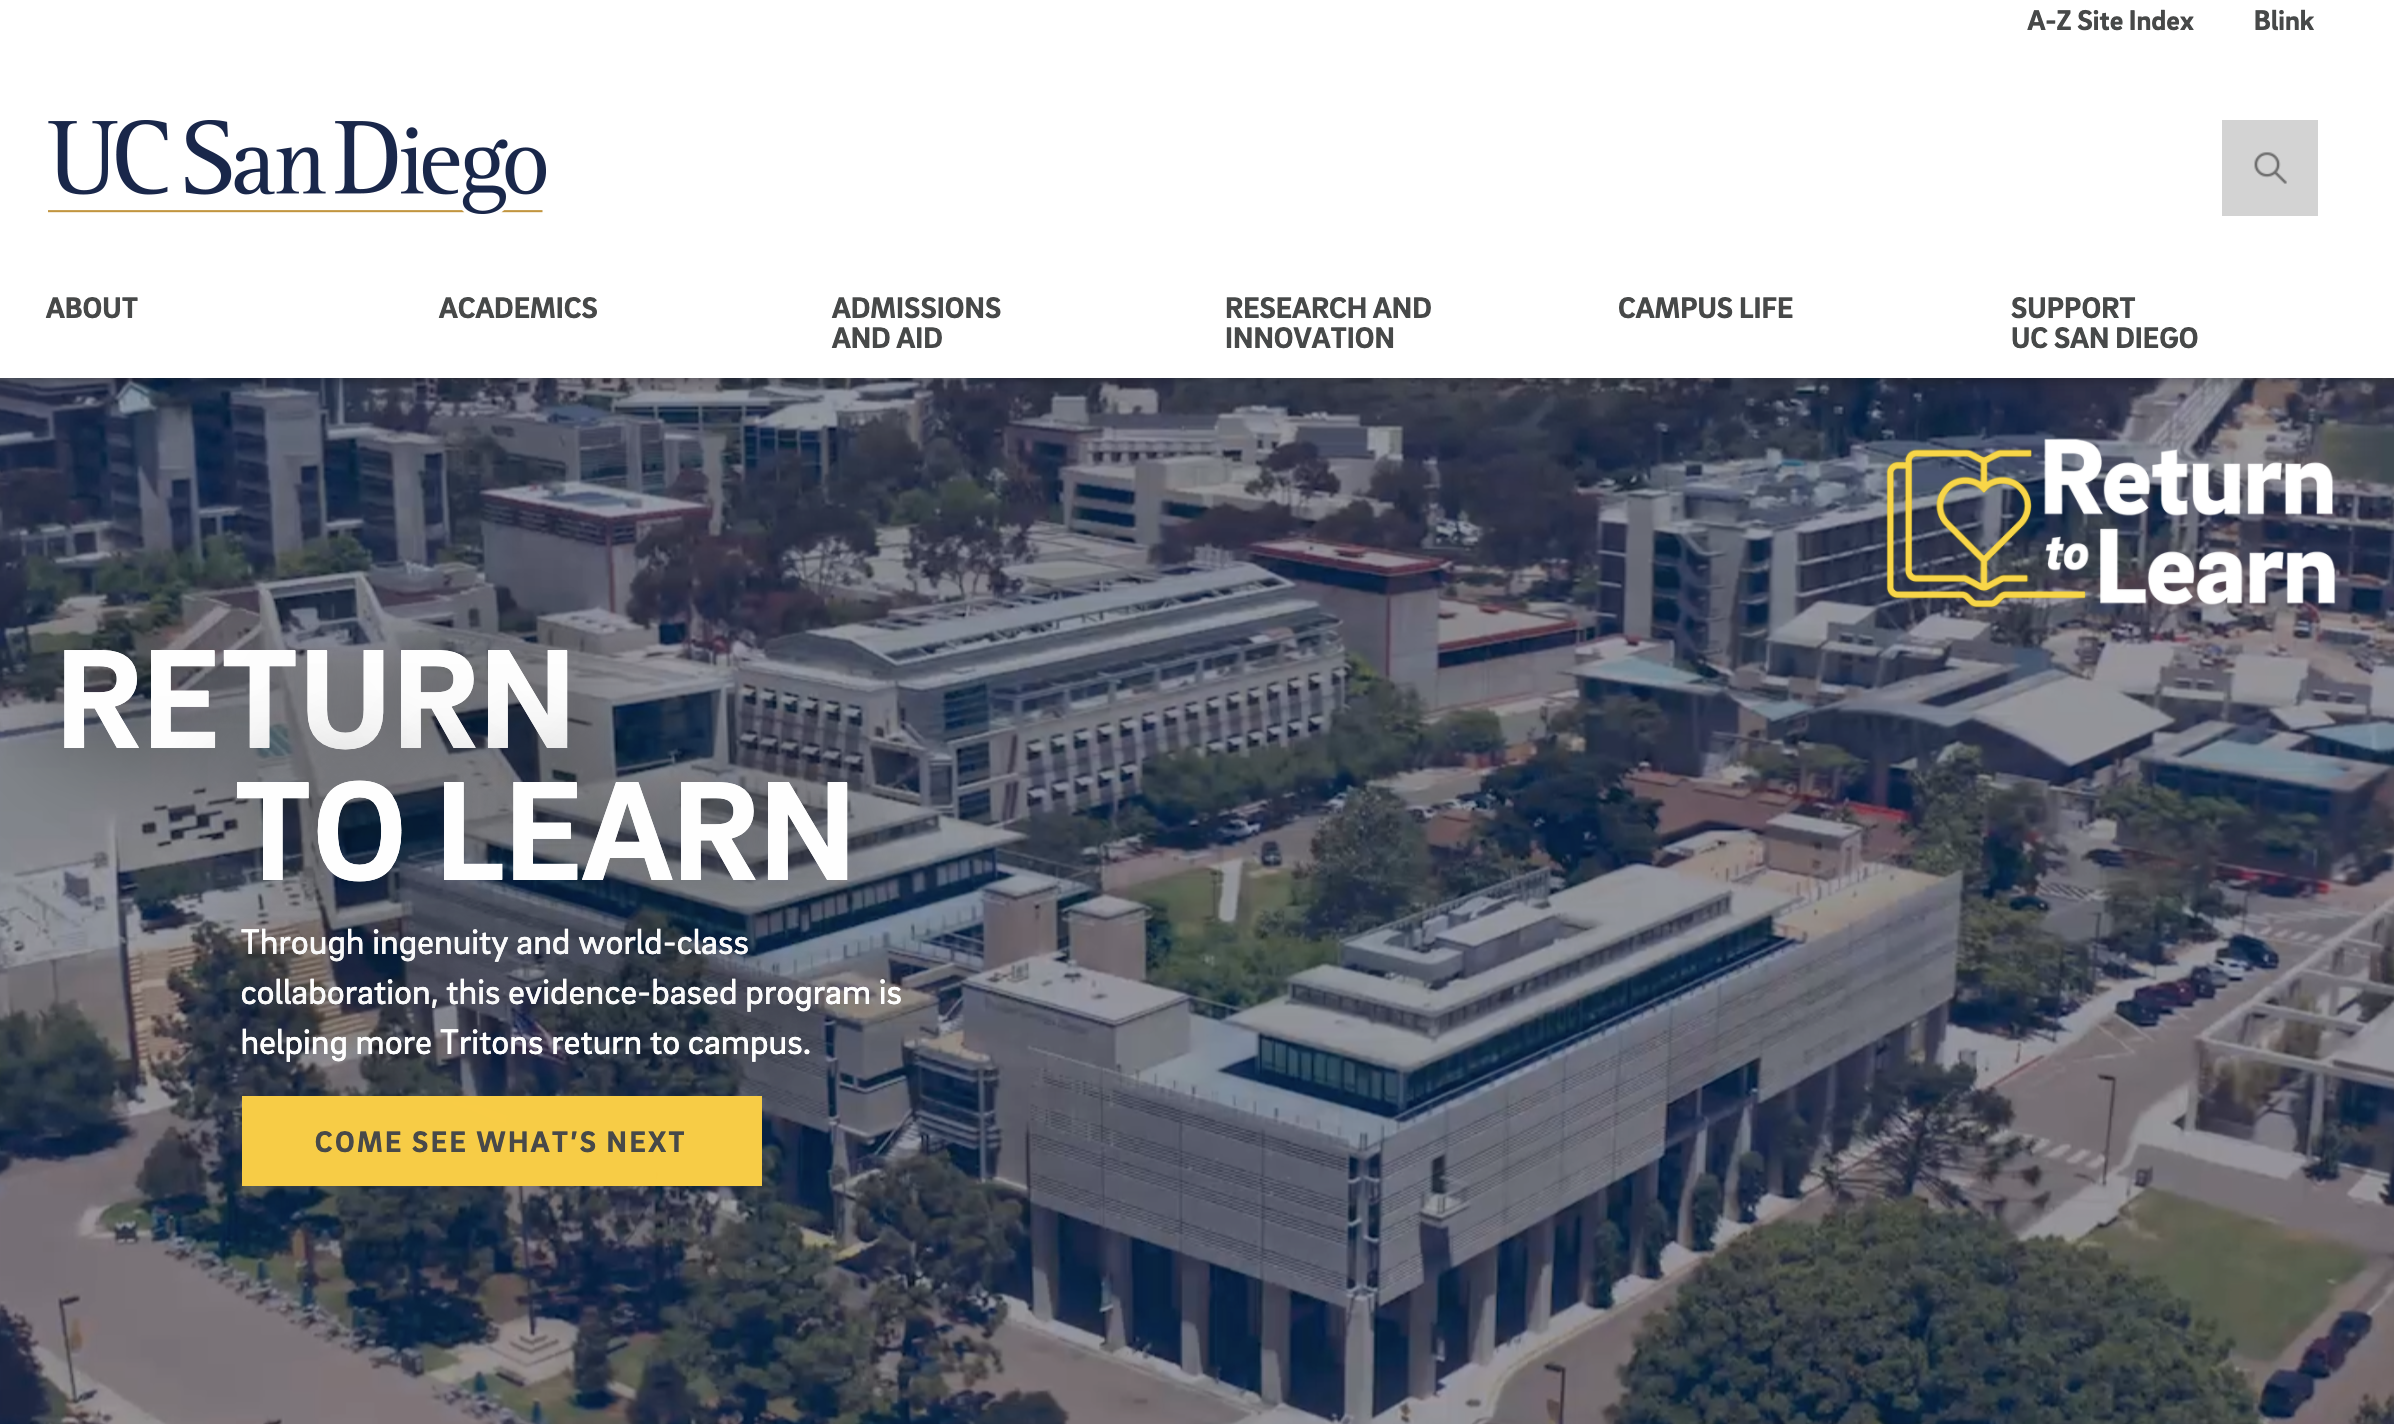 UCSD Website header